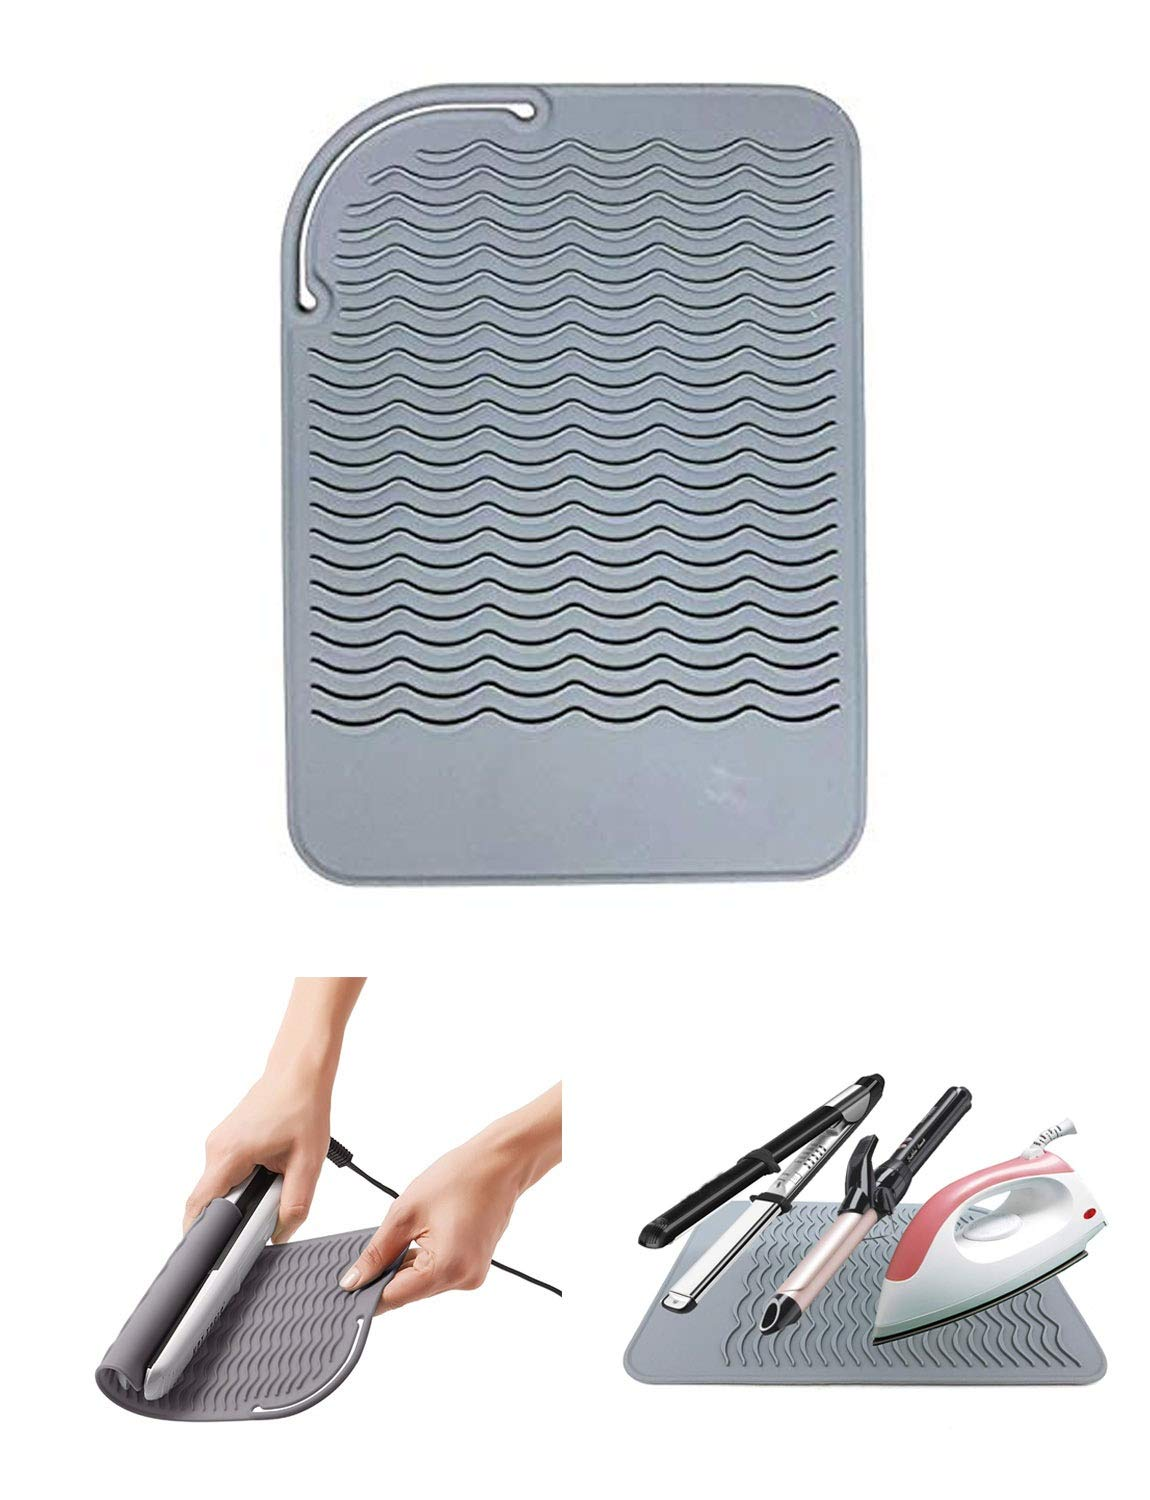 Curling Iron Holder, Heat Resistant Silicone Mat, Portable, Fast Chilling, Food Grade Material for Curling Iron, Hair Straightener, Curling Wand Storage, Gray